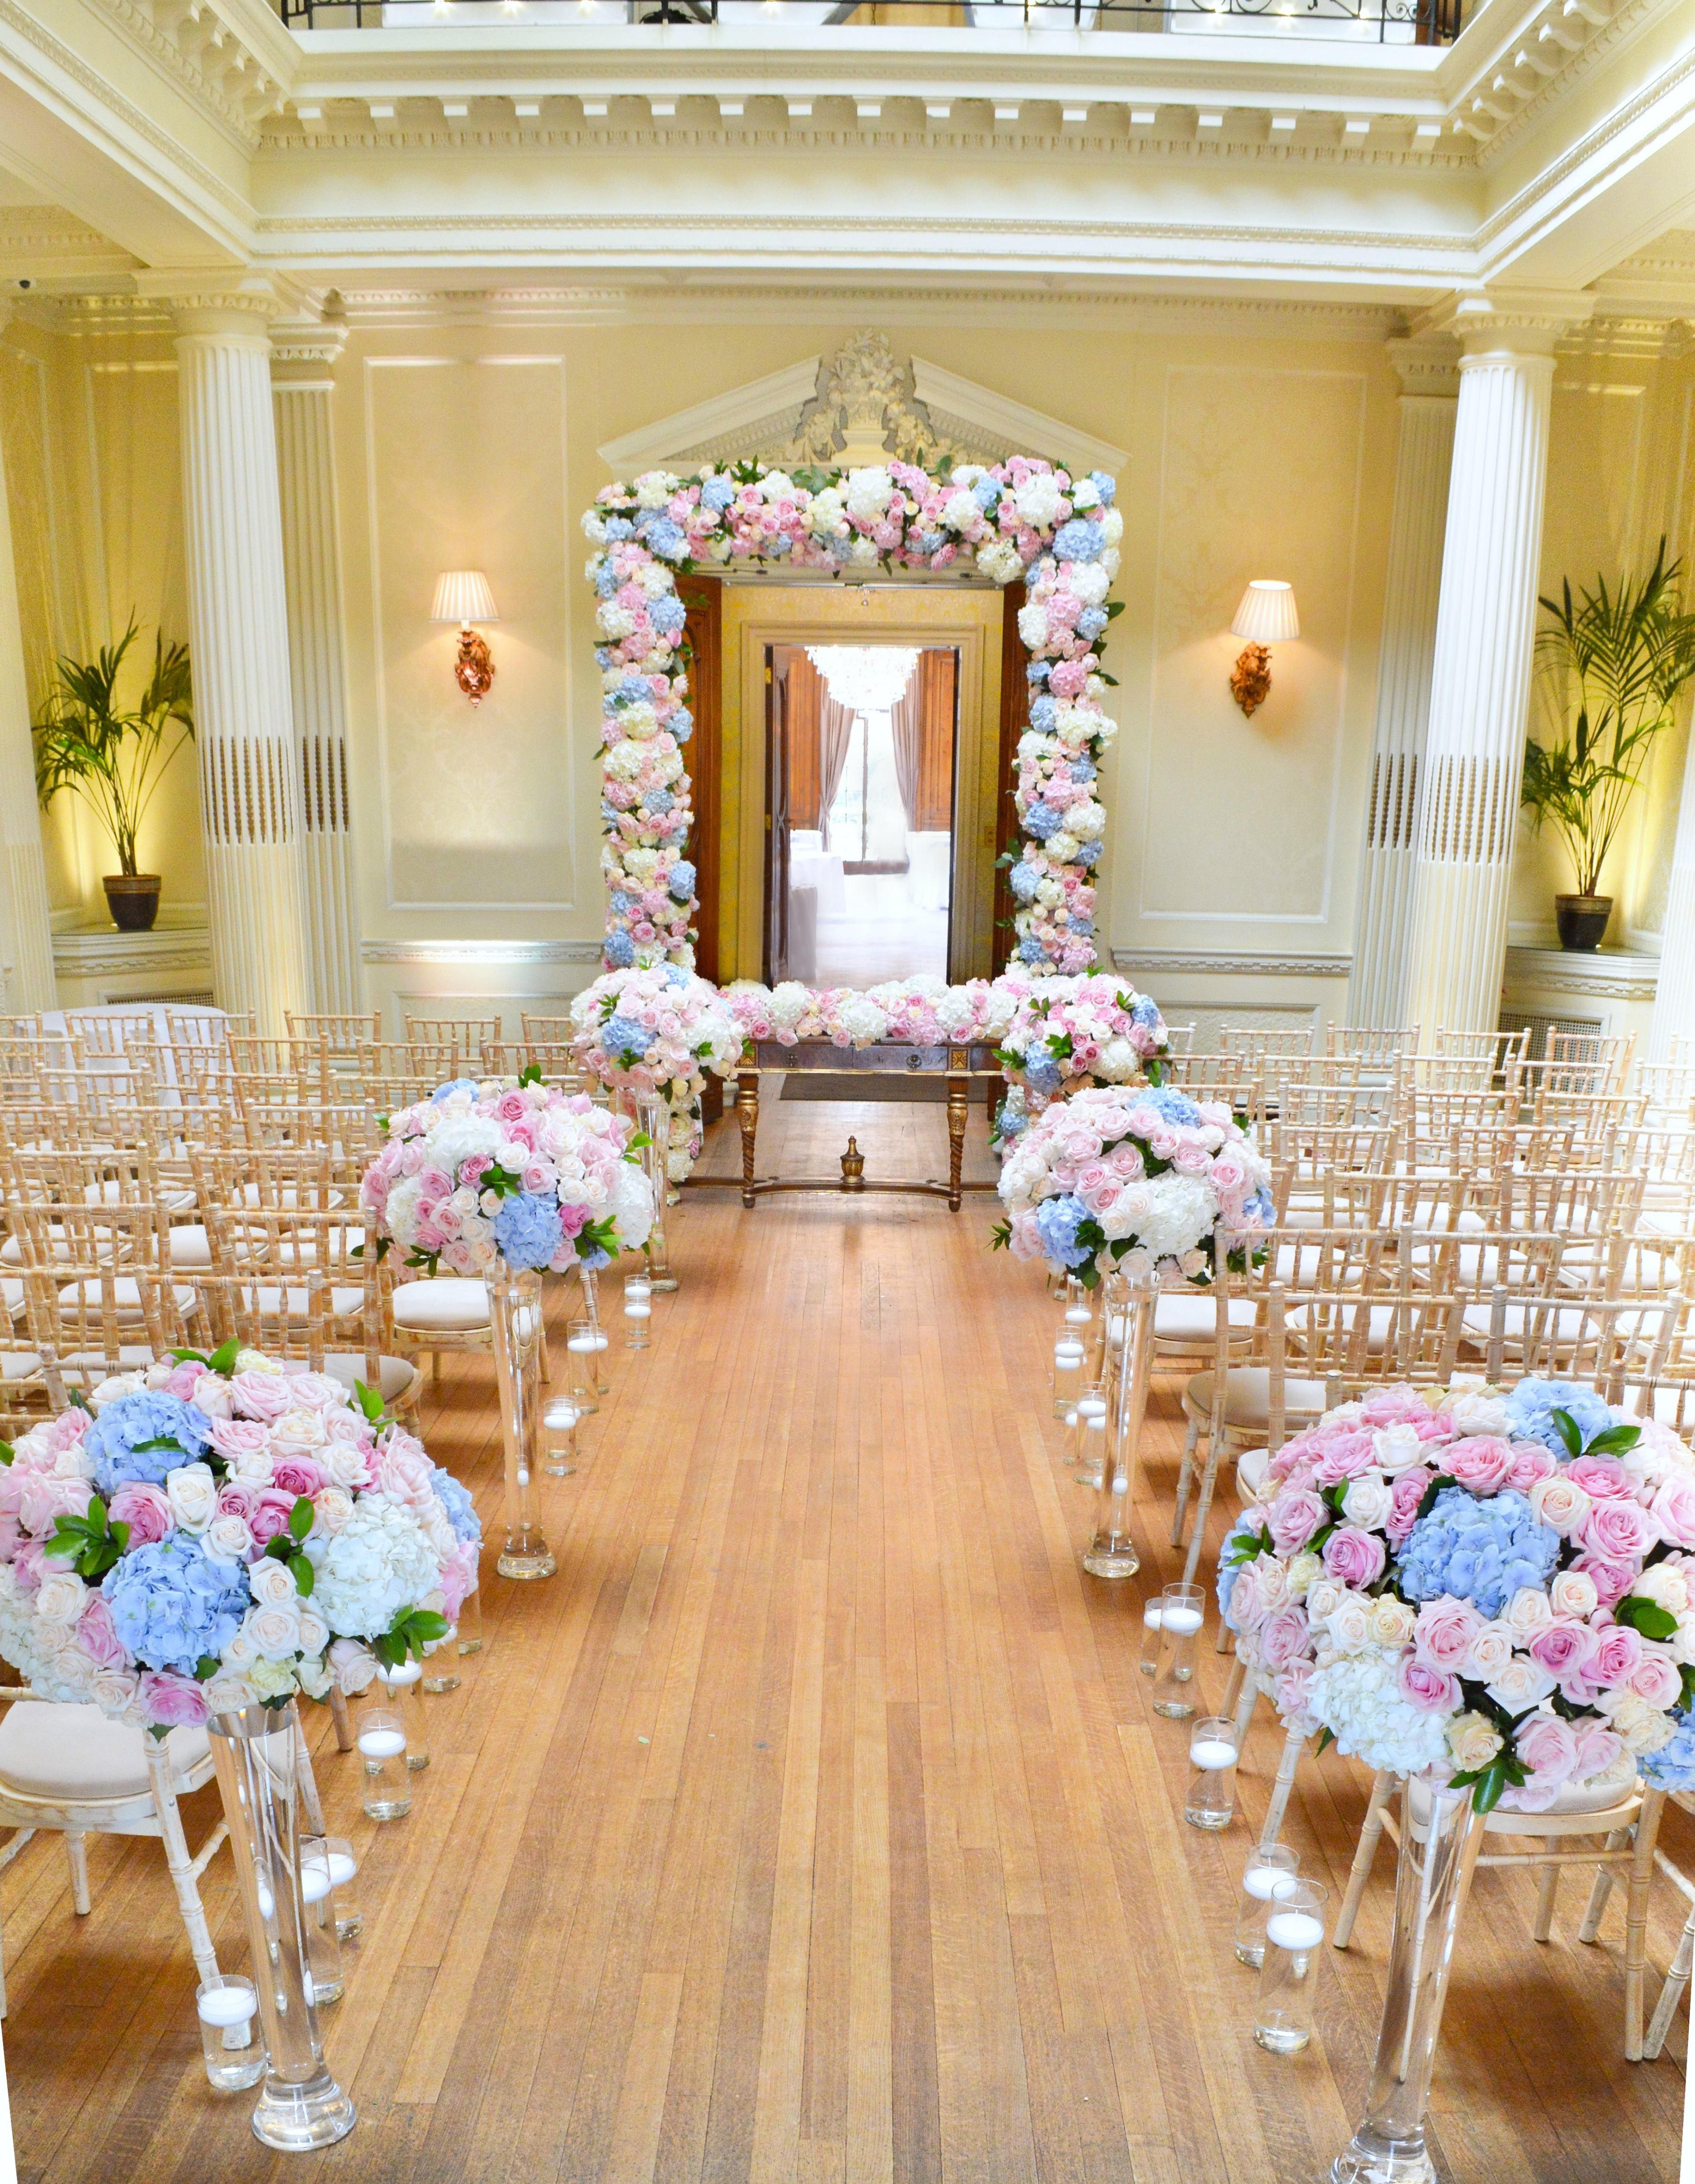 Dusty blue and pink wedding flowers arch registrar table head toptable floral garland wedding ceremony aisle Cherie Kelly cakes London Hedsor House 1